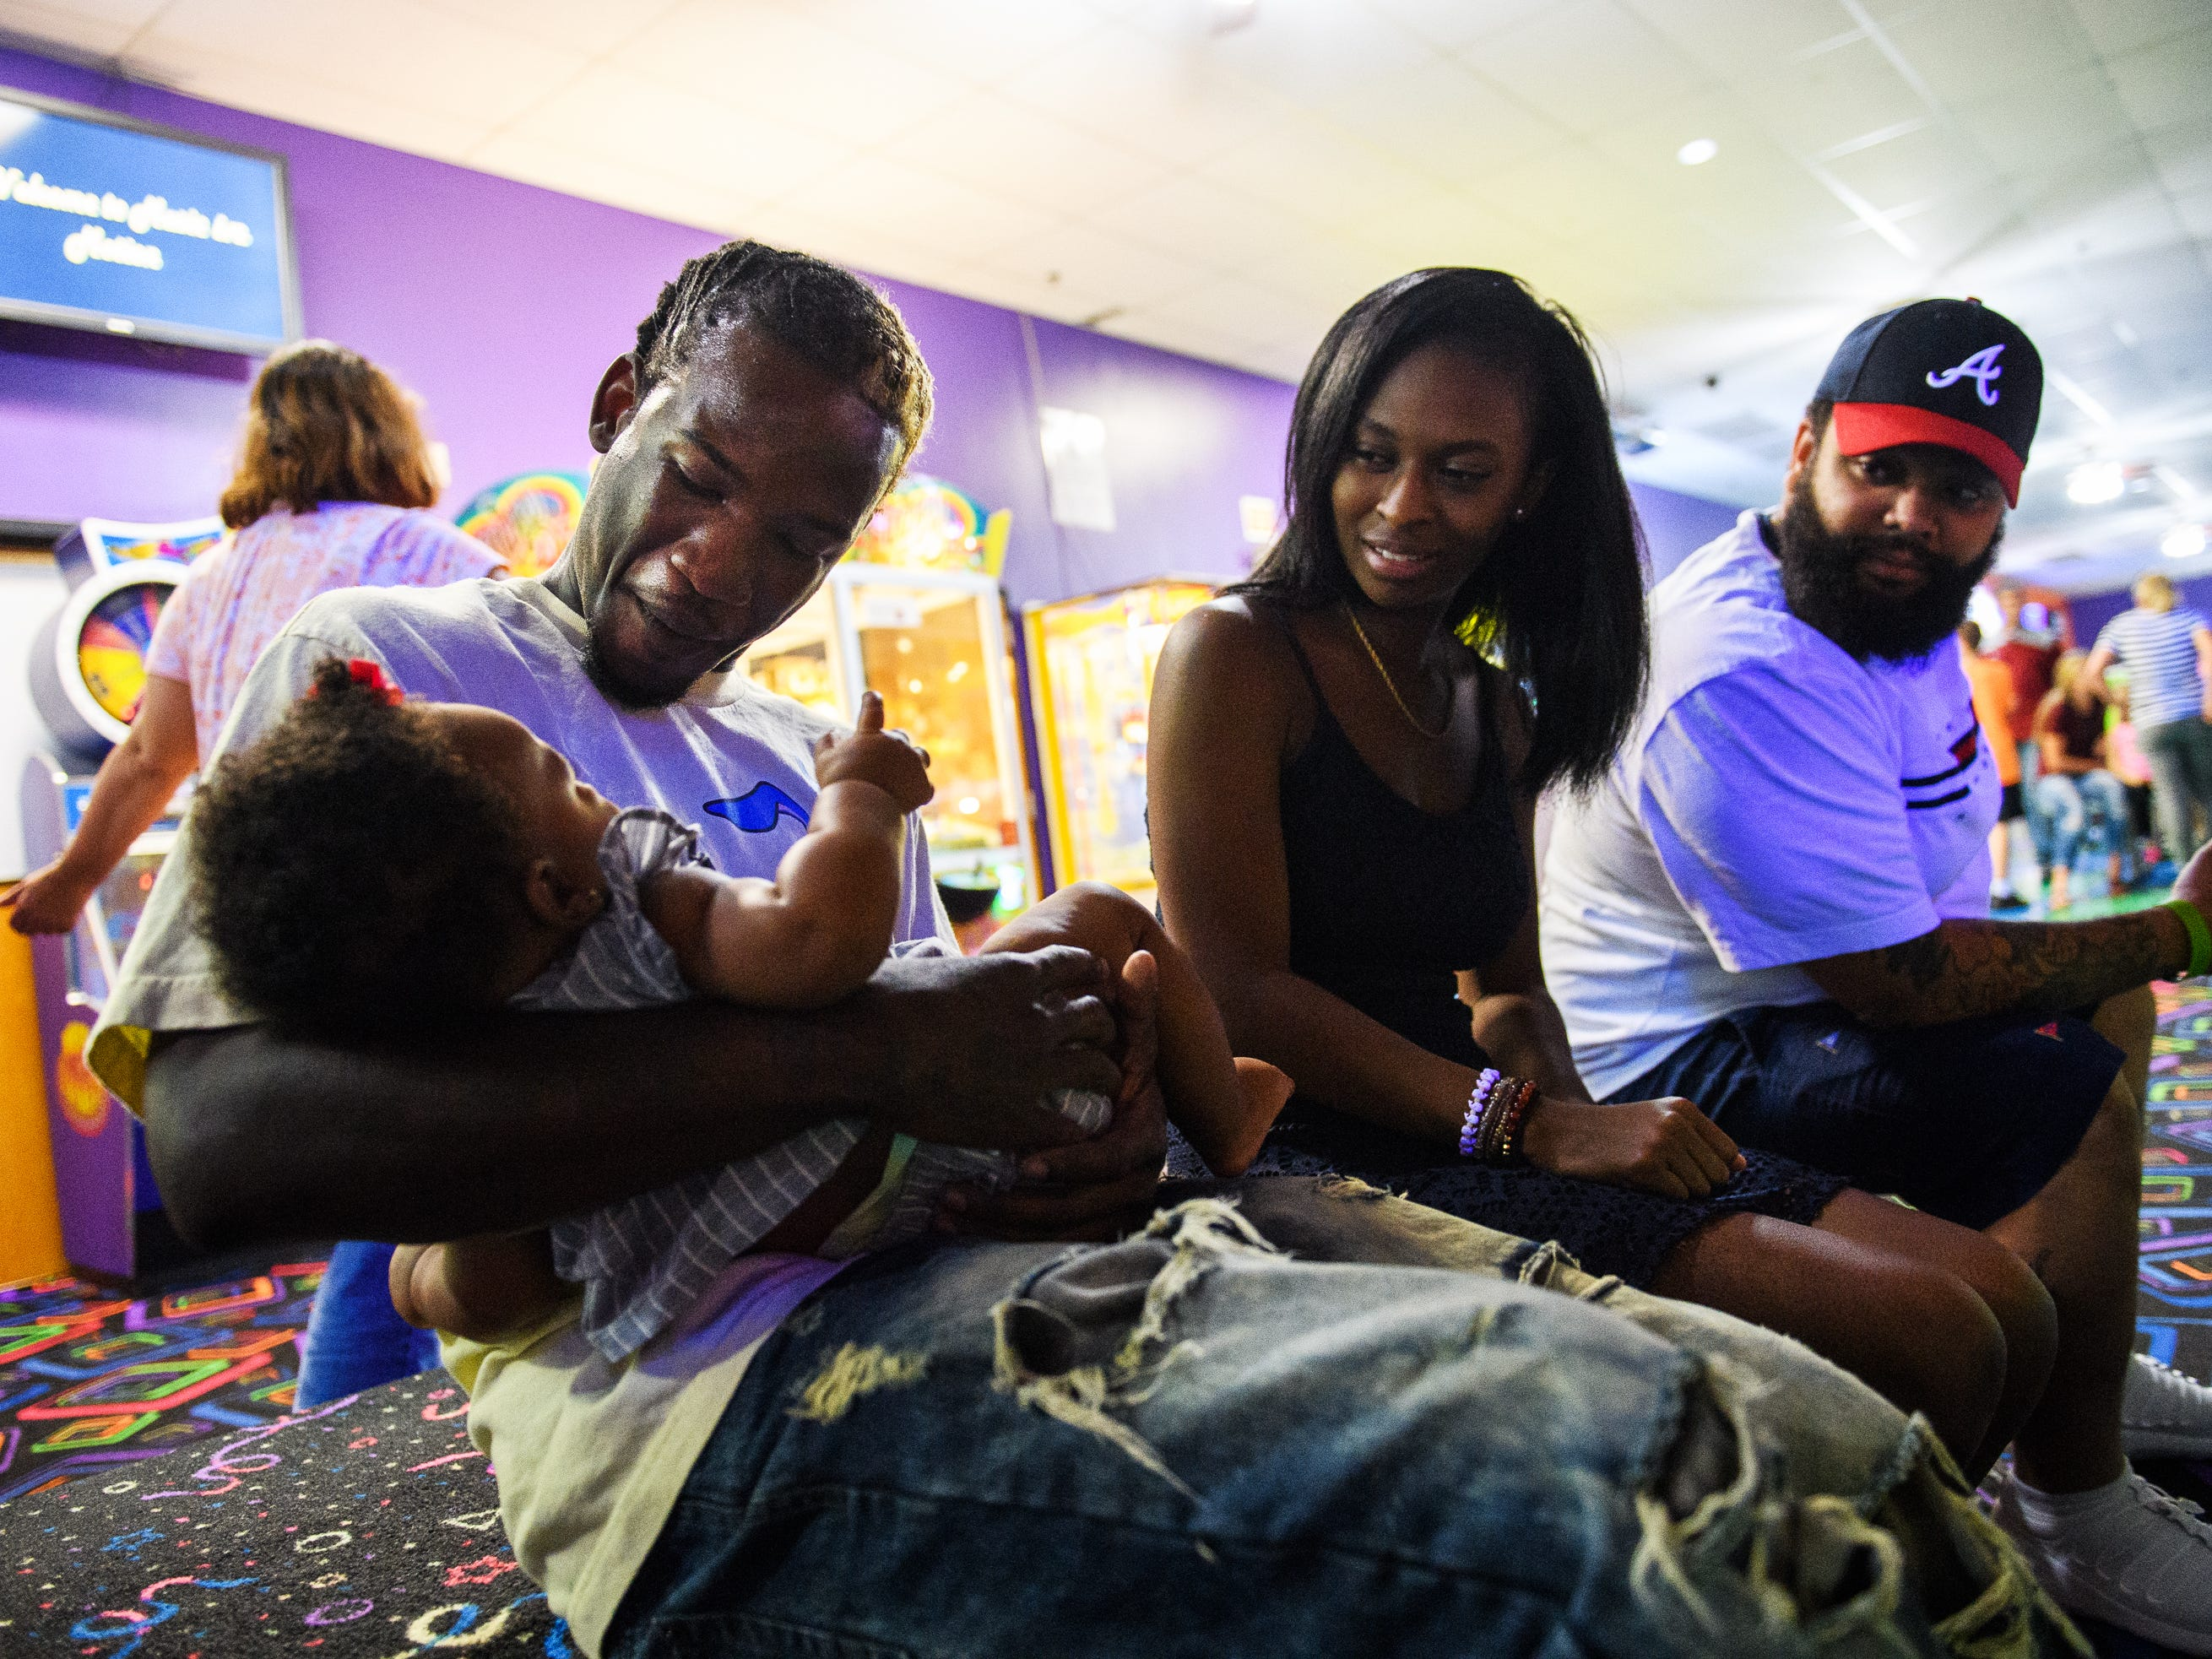 Isiah Kinloch holds Oakland Rae Patrick as he hangs out with Jordyn Patrick and Dominique Mccants at Music In Motion Family Fun Center in Summerville for his son's birthday party on July 29, 2018.